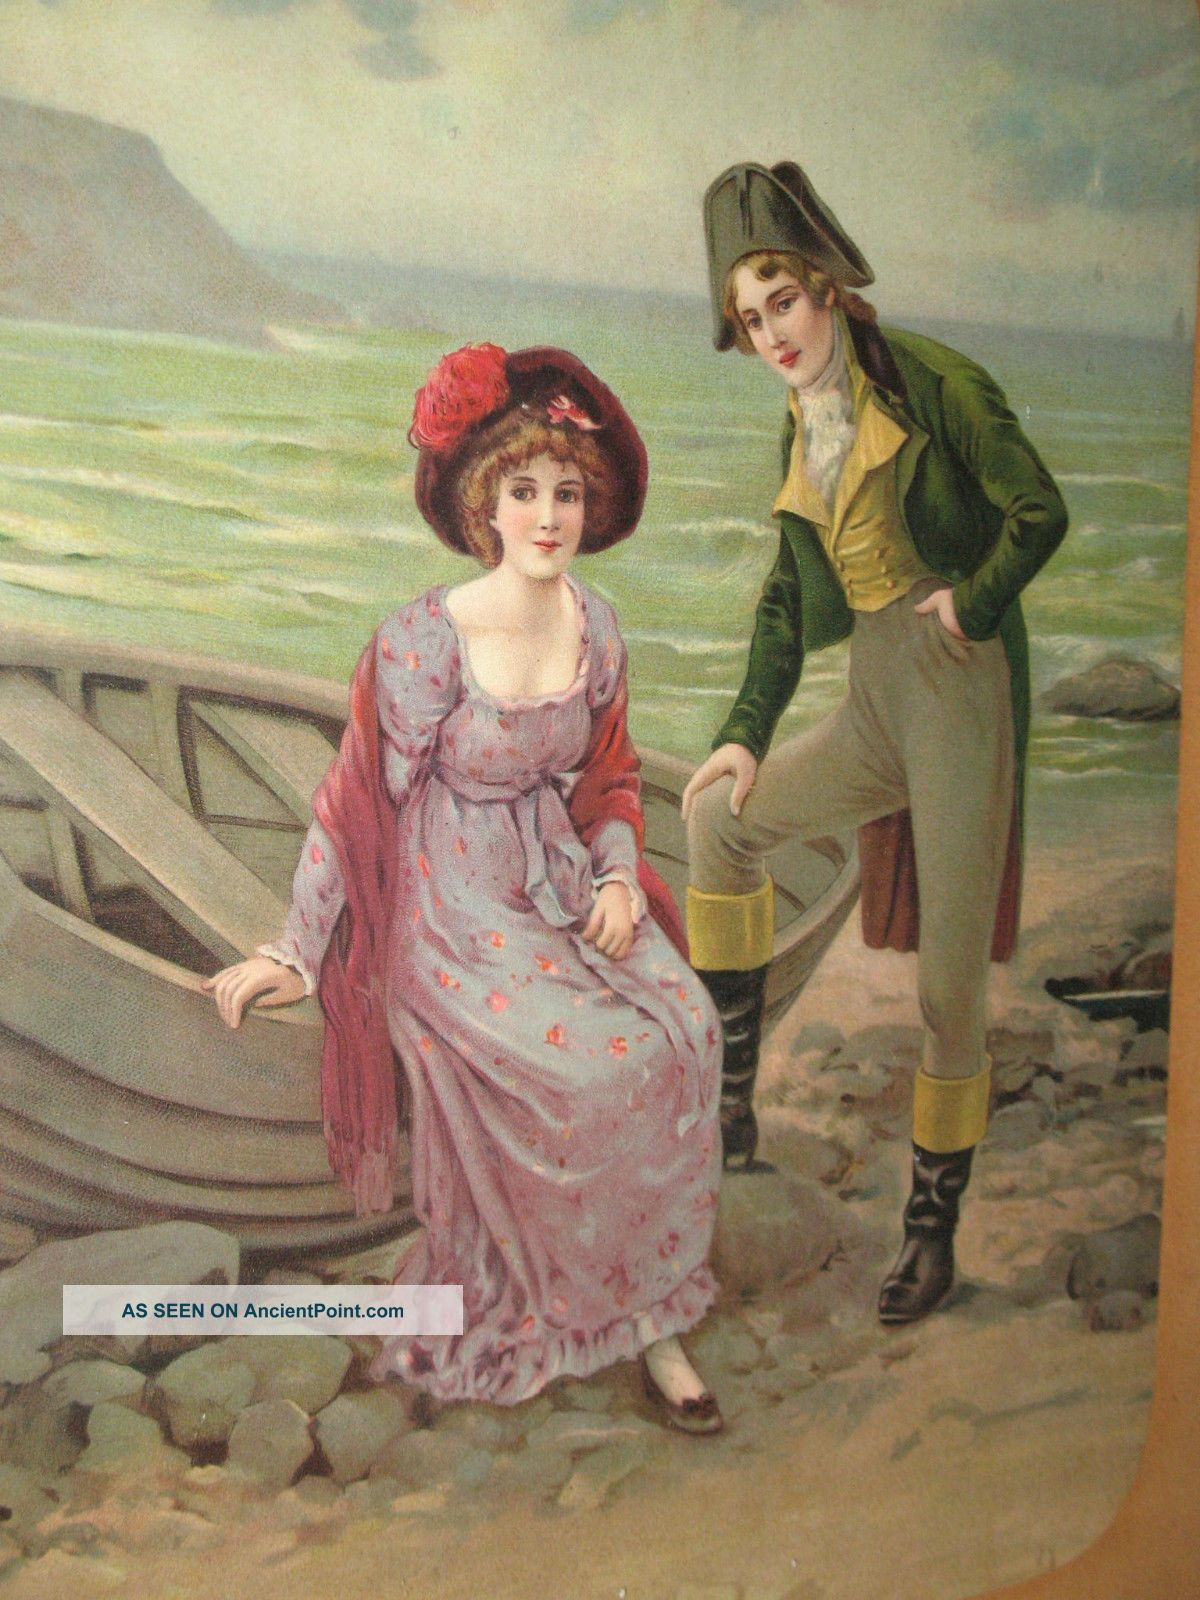 victorian dating and courtship With one day to go until valentine's, we thought it prudent to post some courtship advice from the victorian and edwardian eras it holds just as true today as it did back then: in public a.